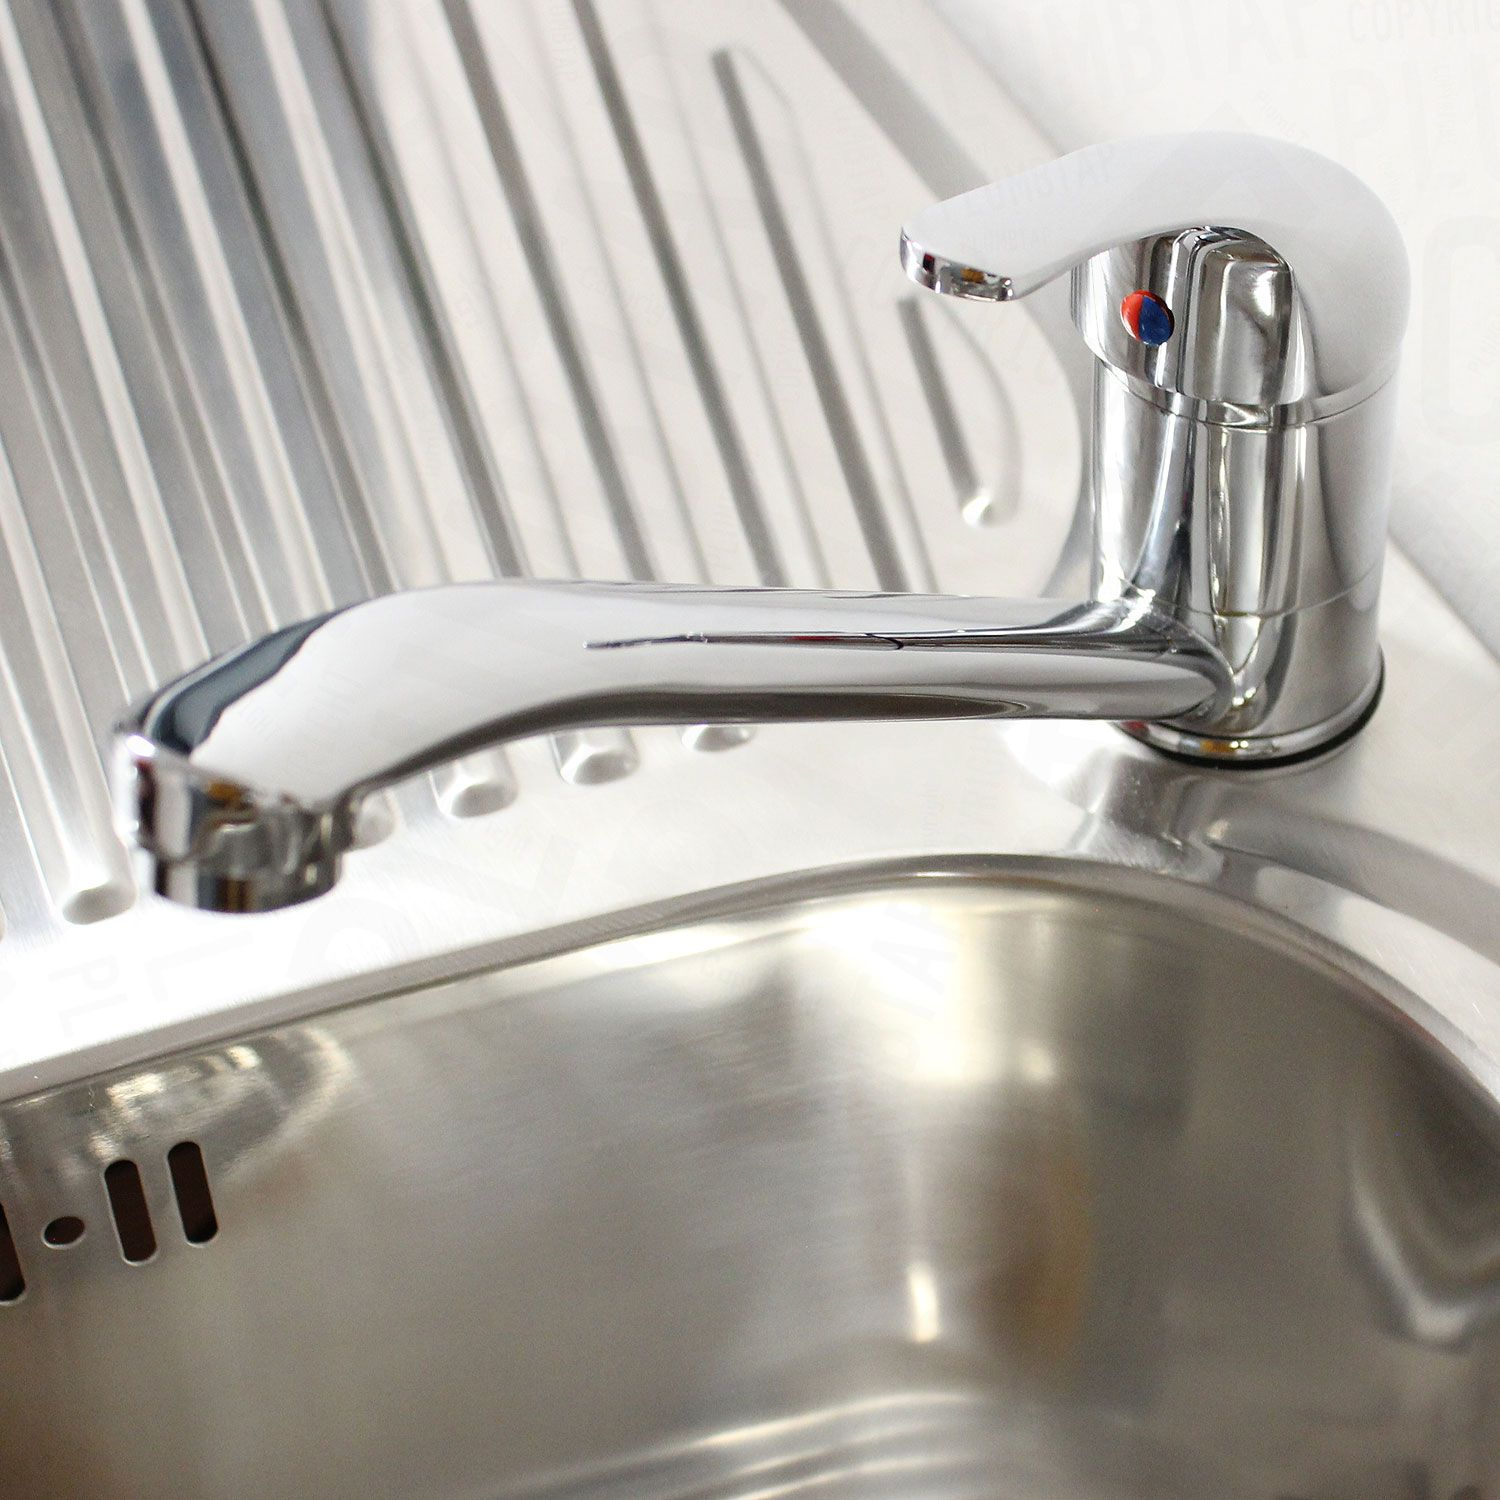 Classic Kitchen Sink Mixer Tap in Chrome